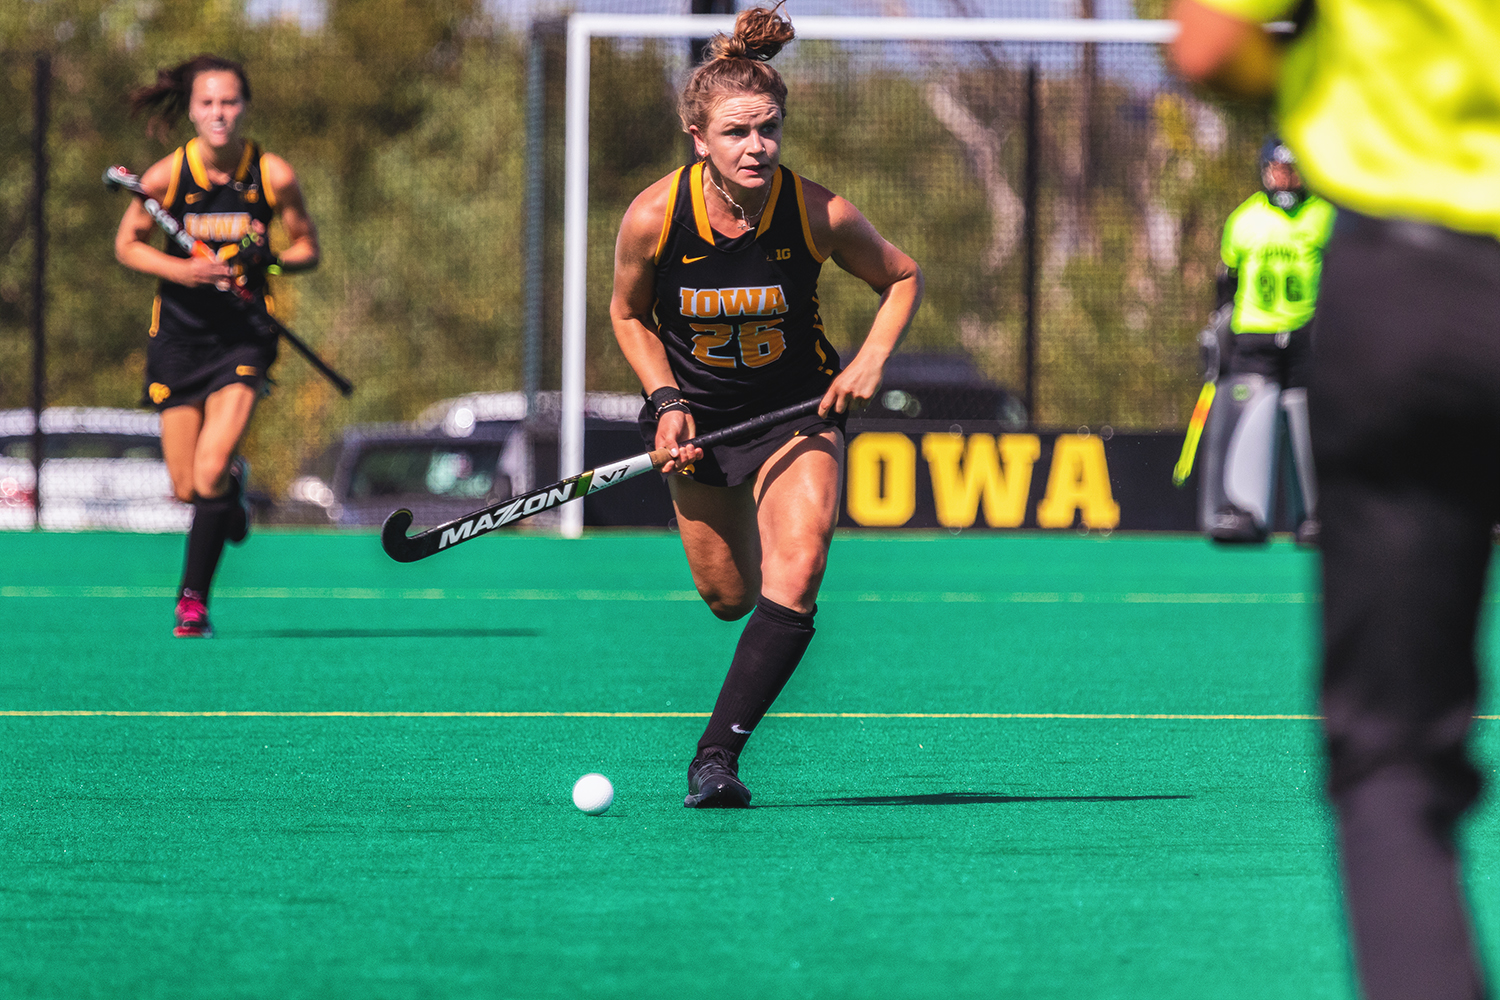 Iowa forward Maddy Murphy pushes the ball upfield during a field hockey match against Penn on Friday, Sep. 14, 2018. The Hawkeyes defeated the Quakers 3–0. (David Harmantas/The Daily Iowan)